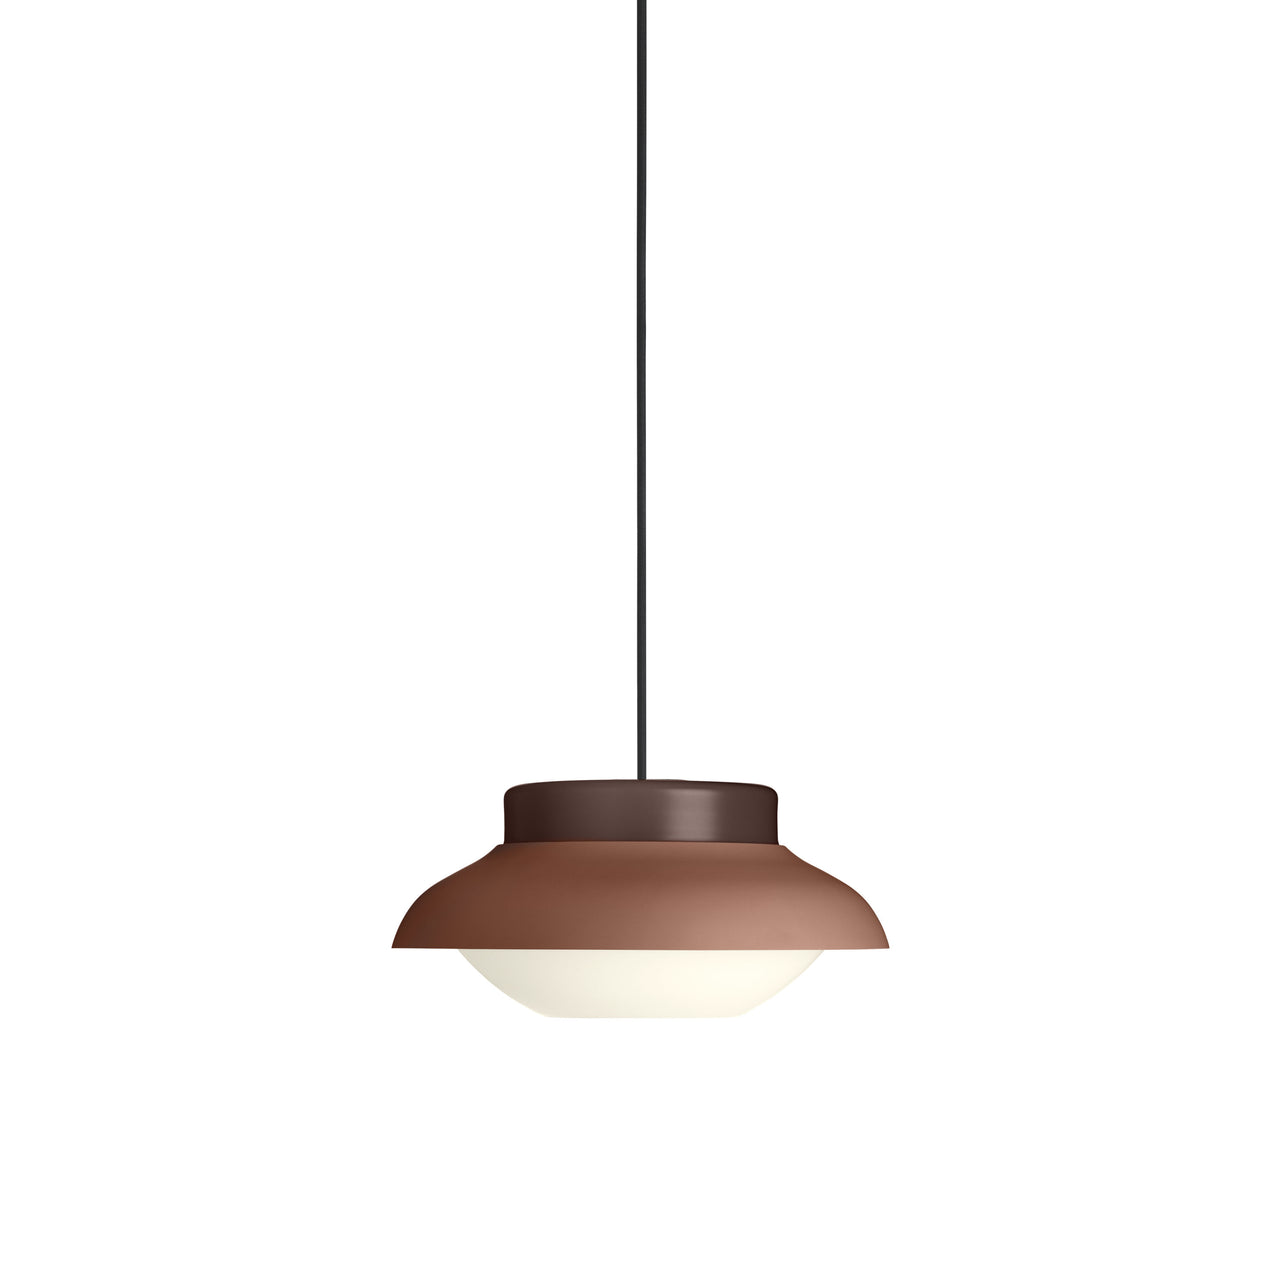 Collar Pendant Light: Small + Terracotta